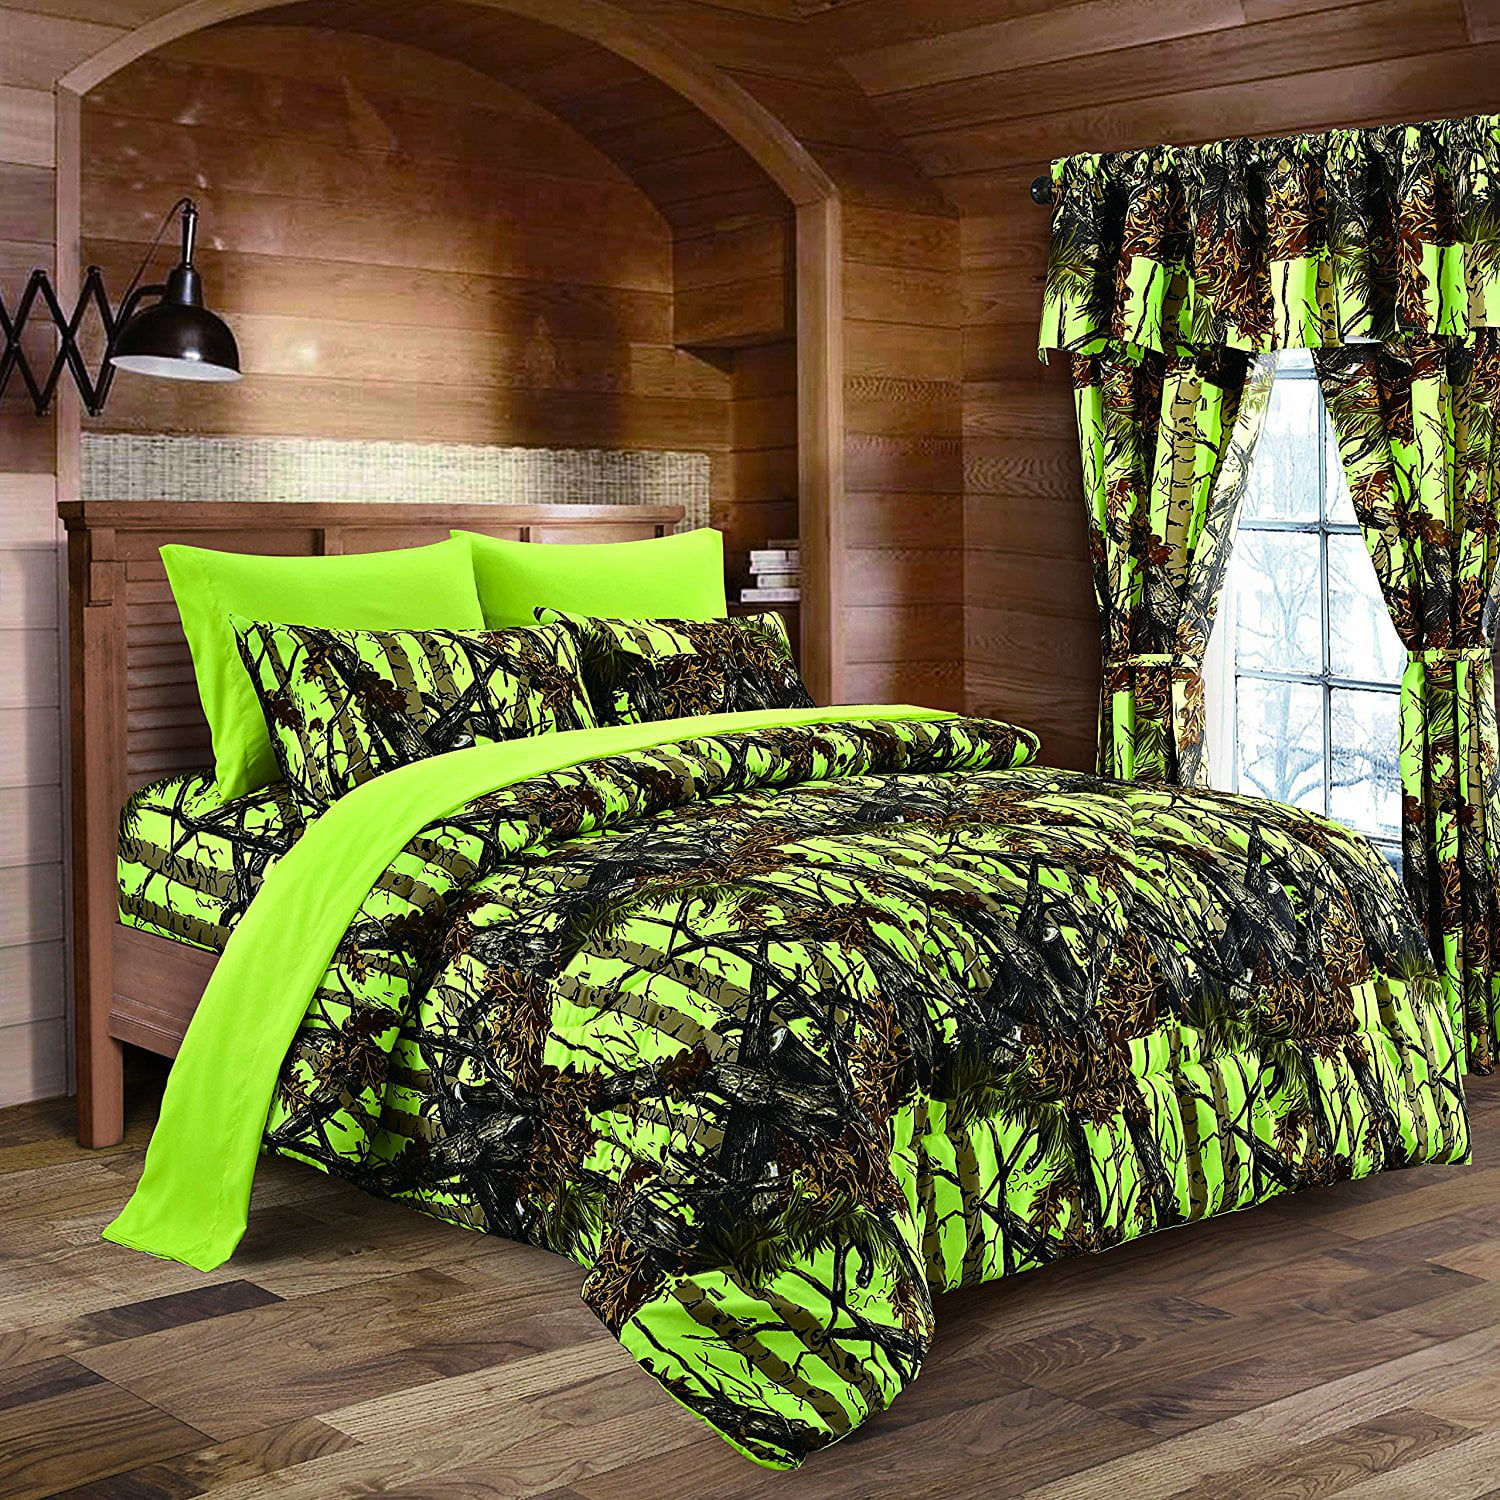 Click here to buy - SPRING CLEANING SALE Lime Camouflage Full Size 8pc Comforter, SHeet, Pillowcases, and... by Regal Comfort.